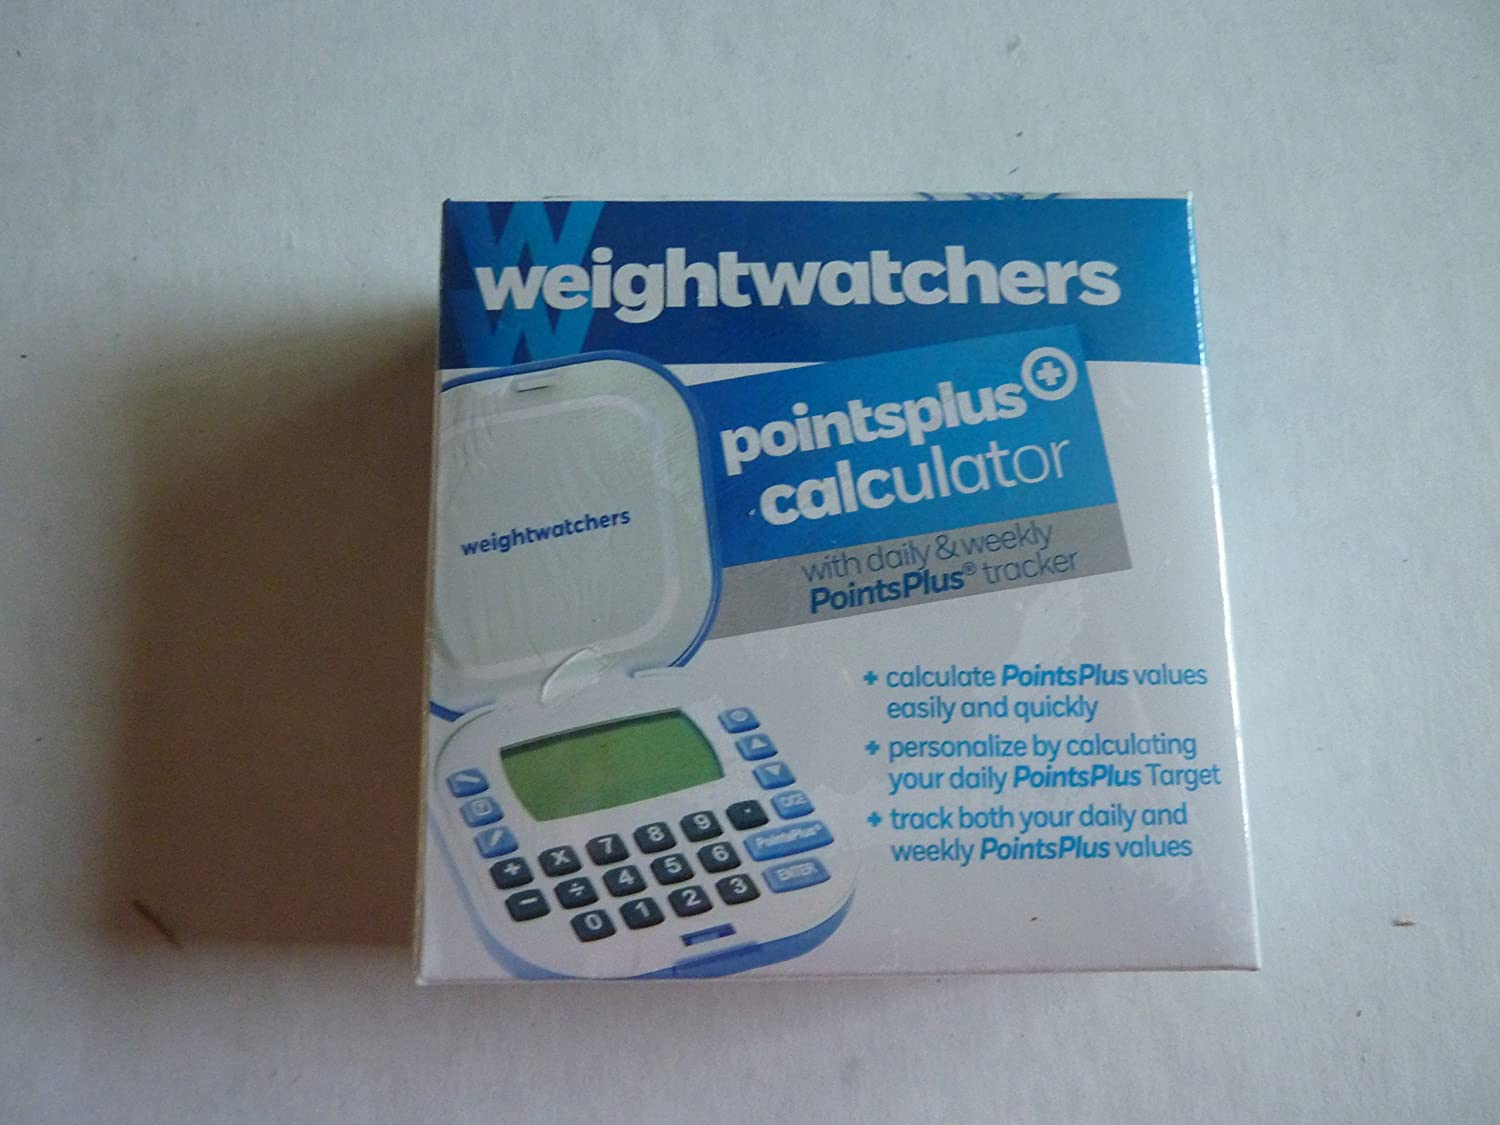 Weight Watchers Points Washington Mall Plus Calculator 2015 Edition New arrival